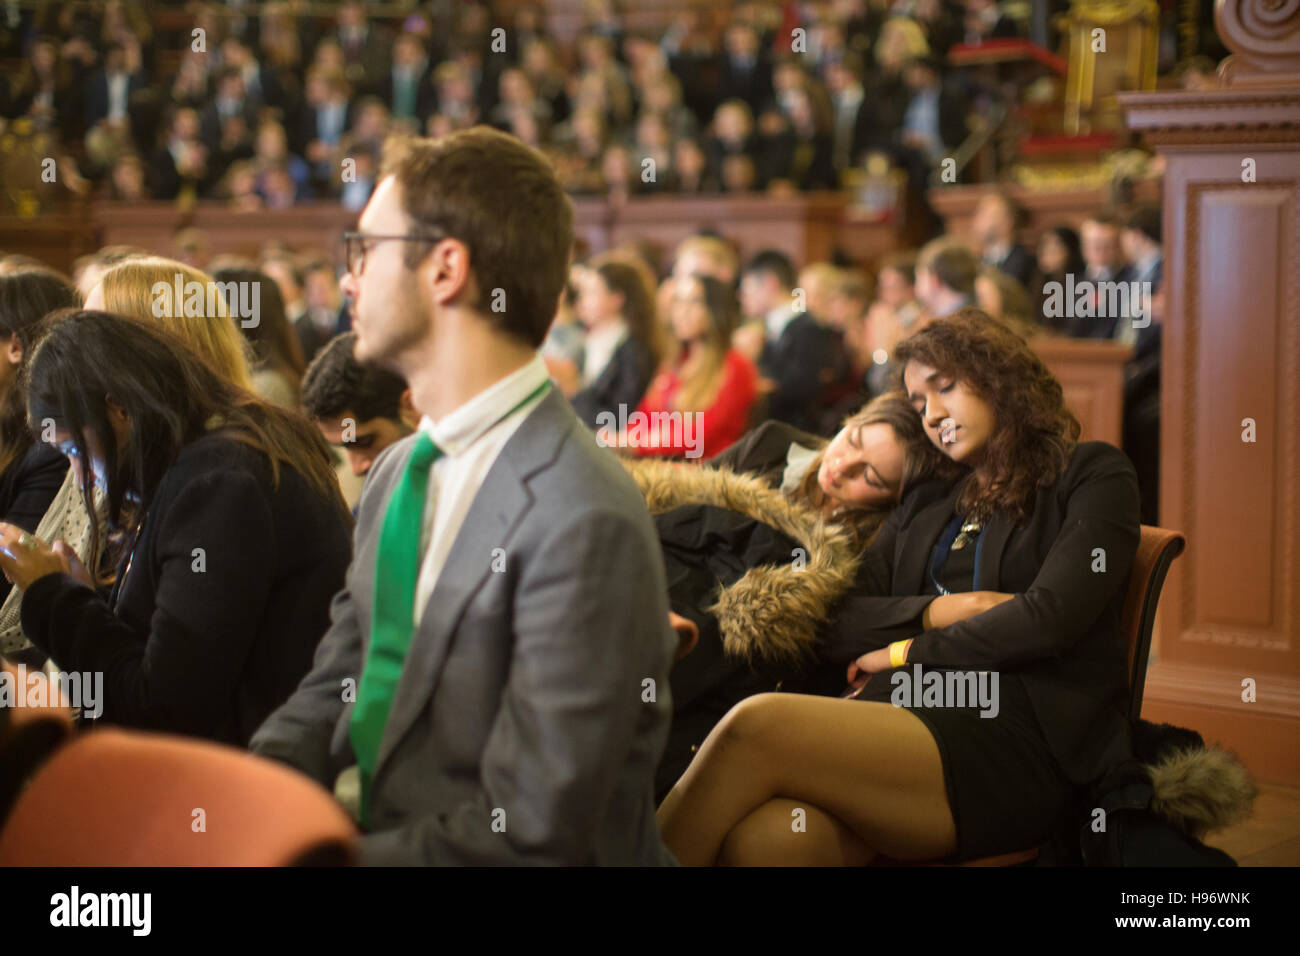 Two students take a nap during the awards ceremony of OxIMUN in the Sheldonian Theatre. From a series of photos - Stock Image